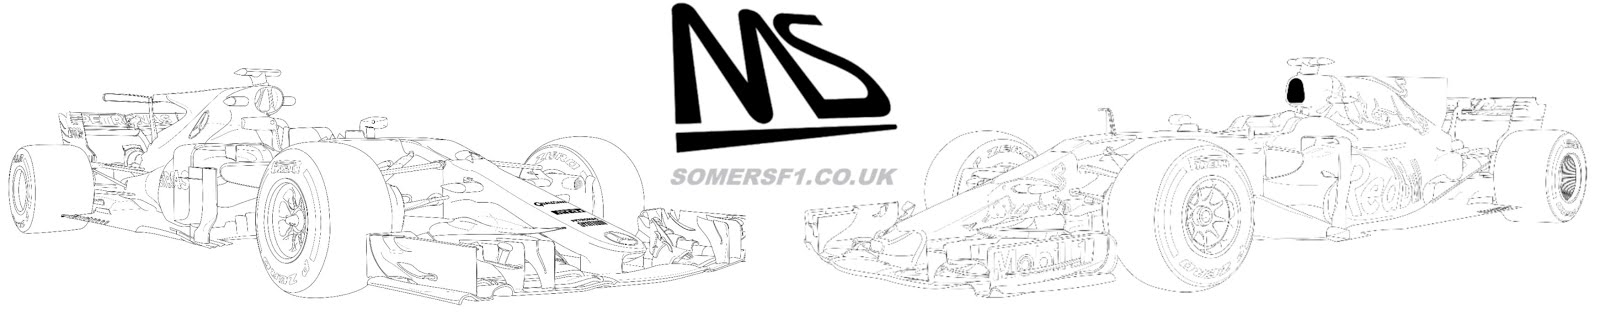 SomersF1 - The technical side of Formula One